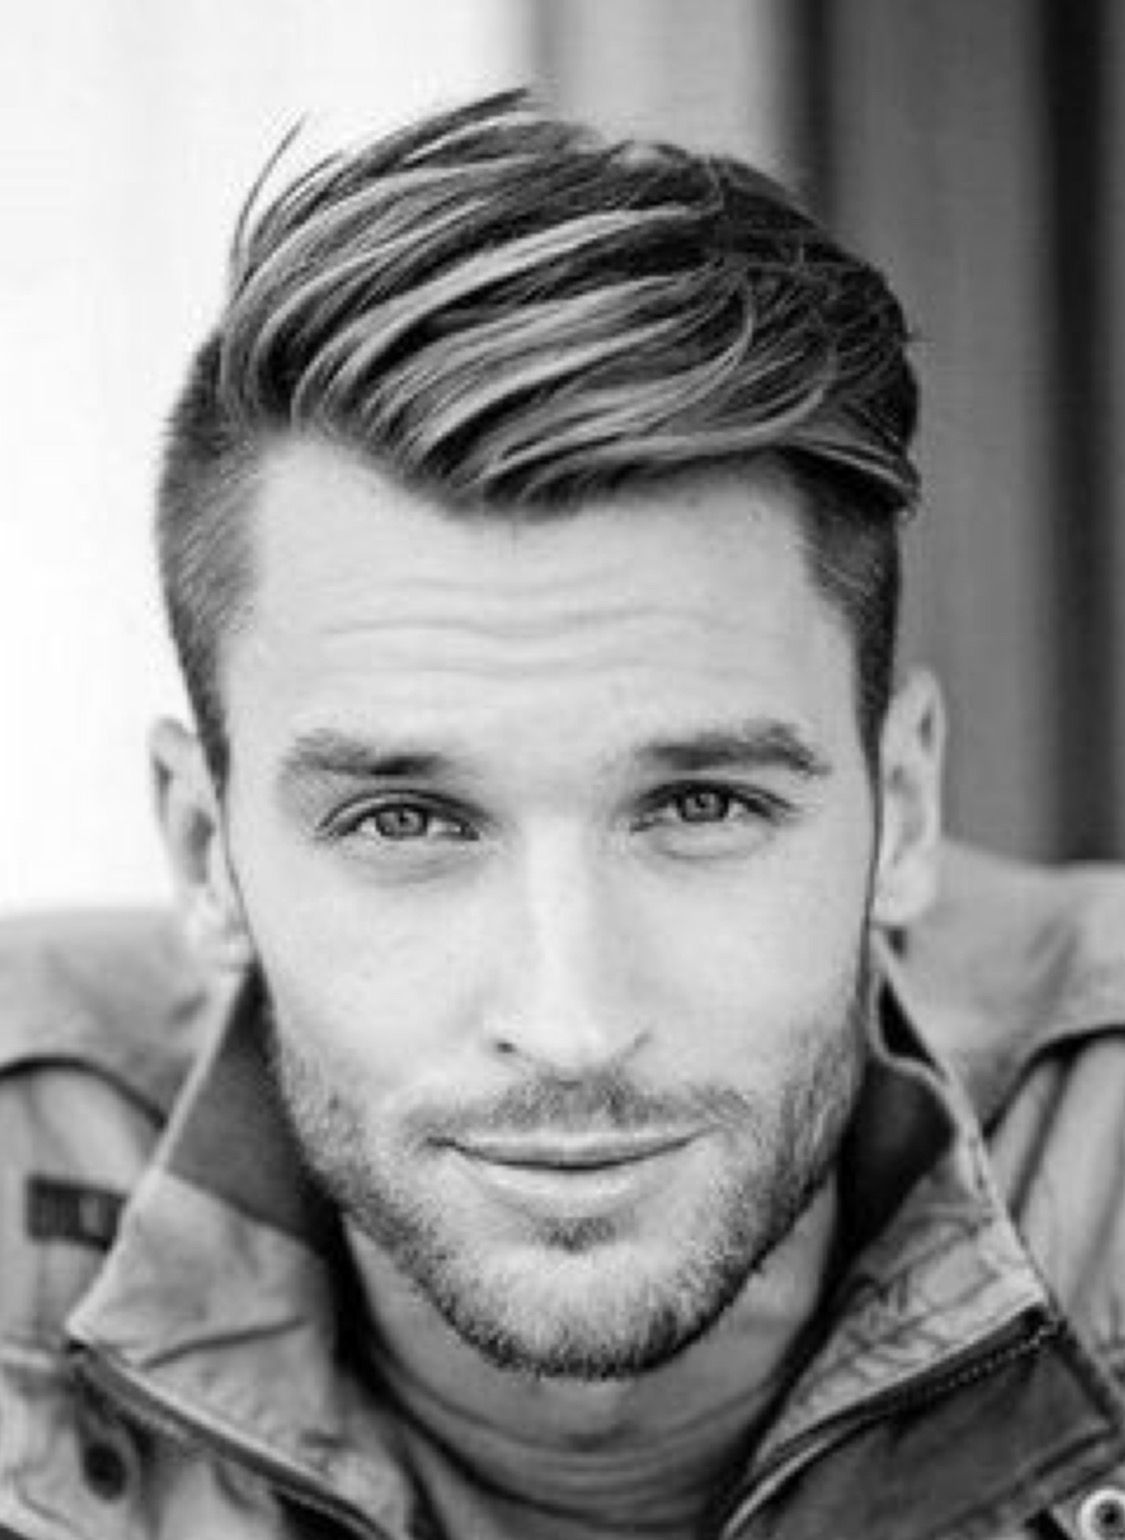 Grant Hairstyle Hair In 2018 Pinterest Haircuts Boy Hair And